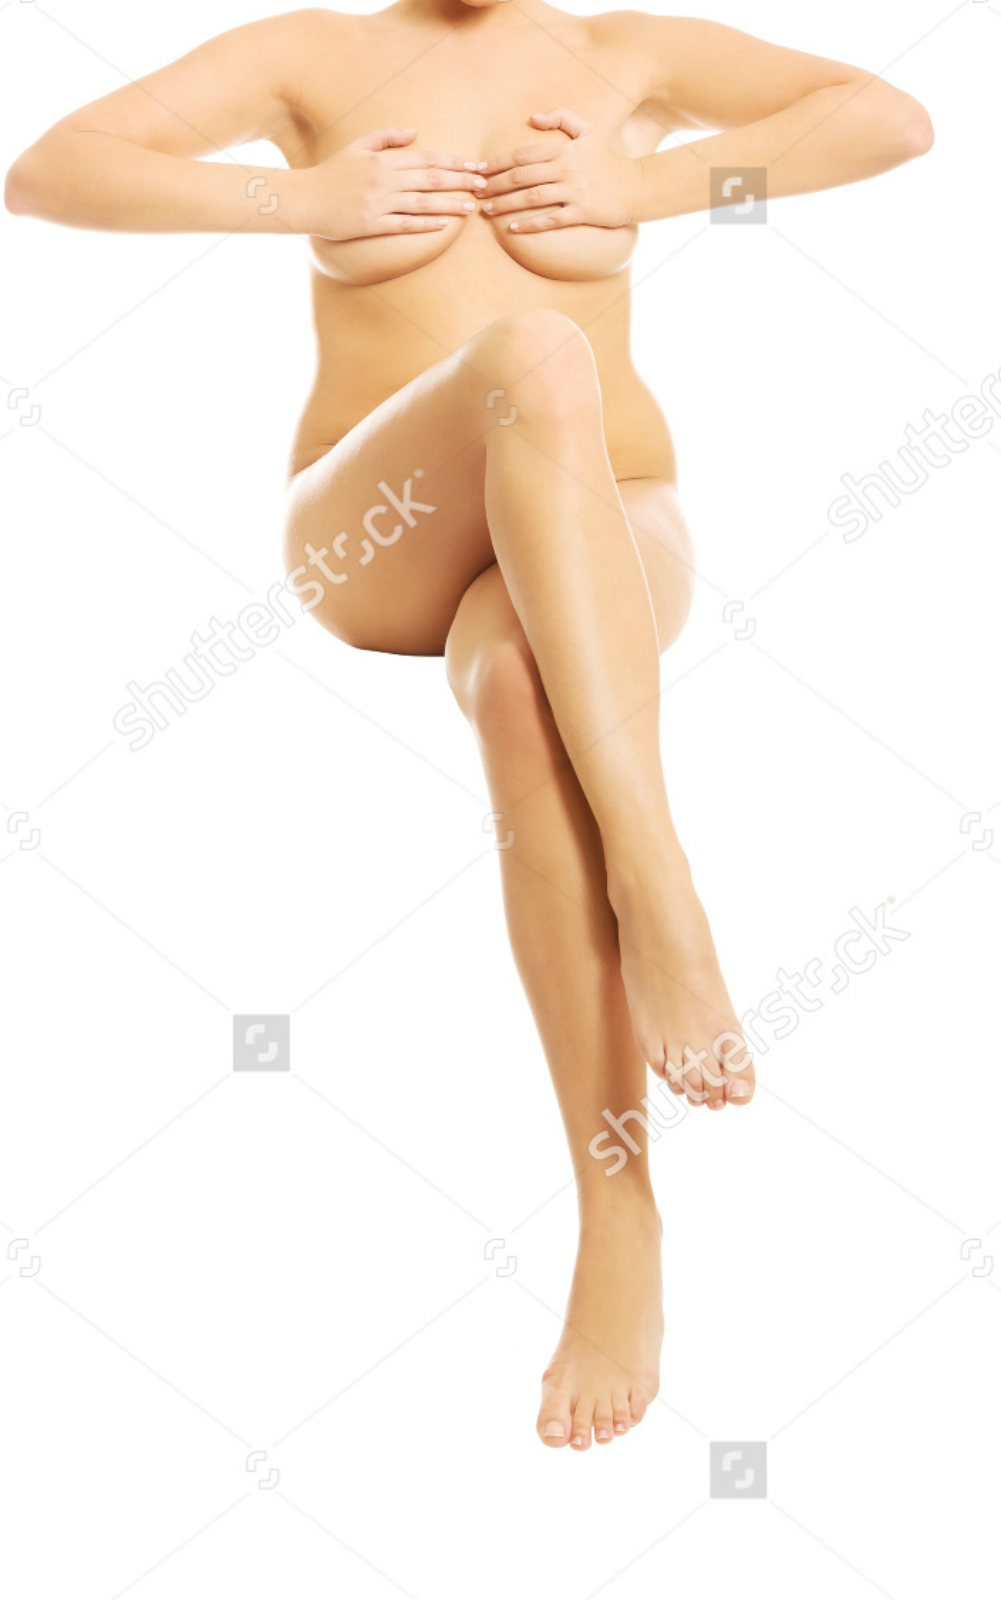 Nude Woman Putting Hands On Breasts.png